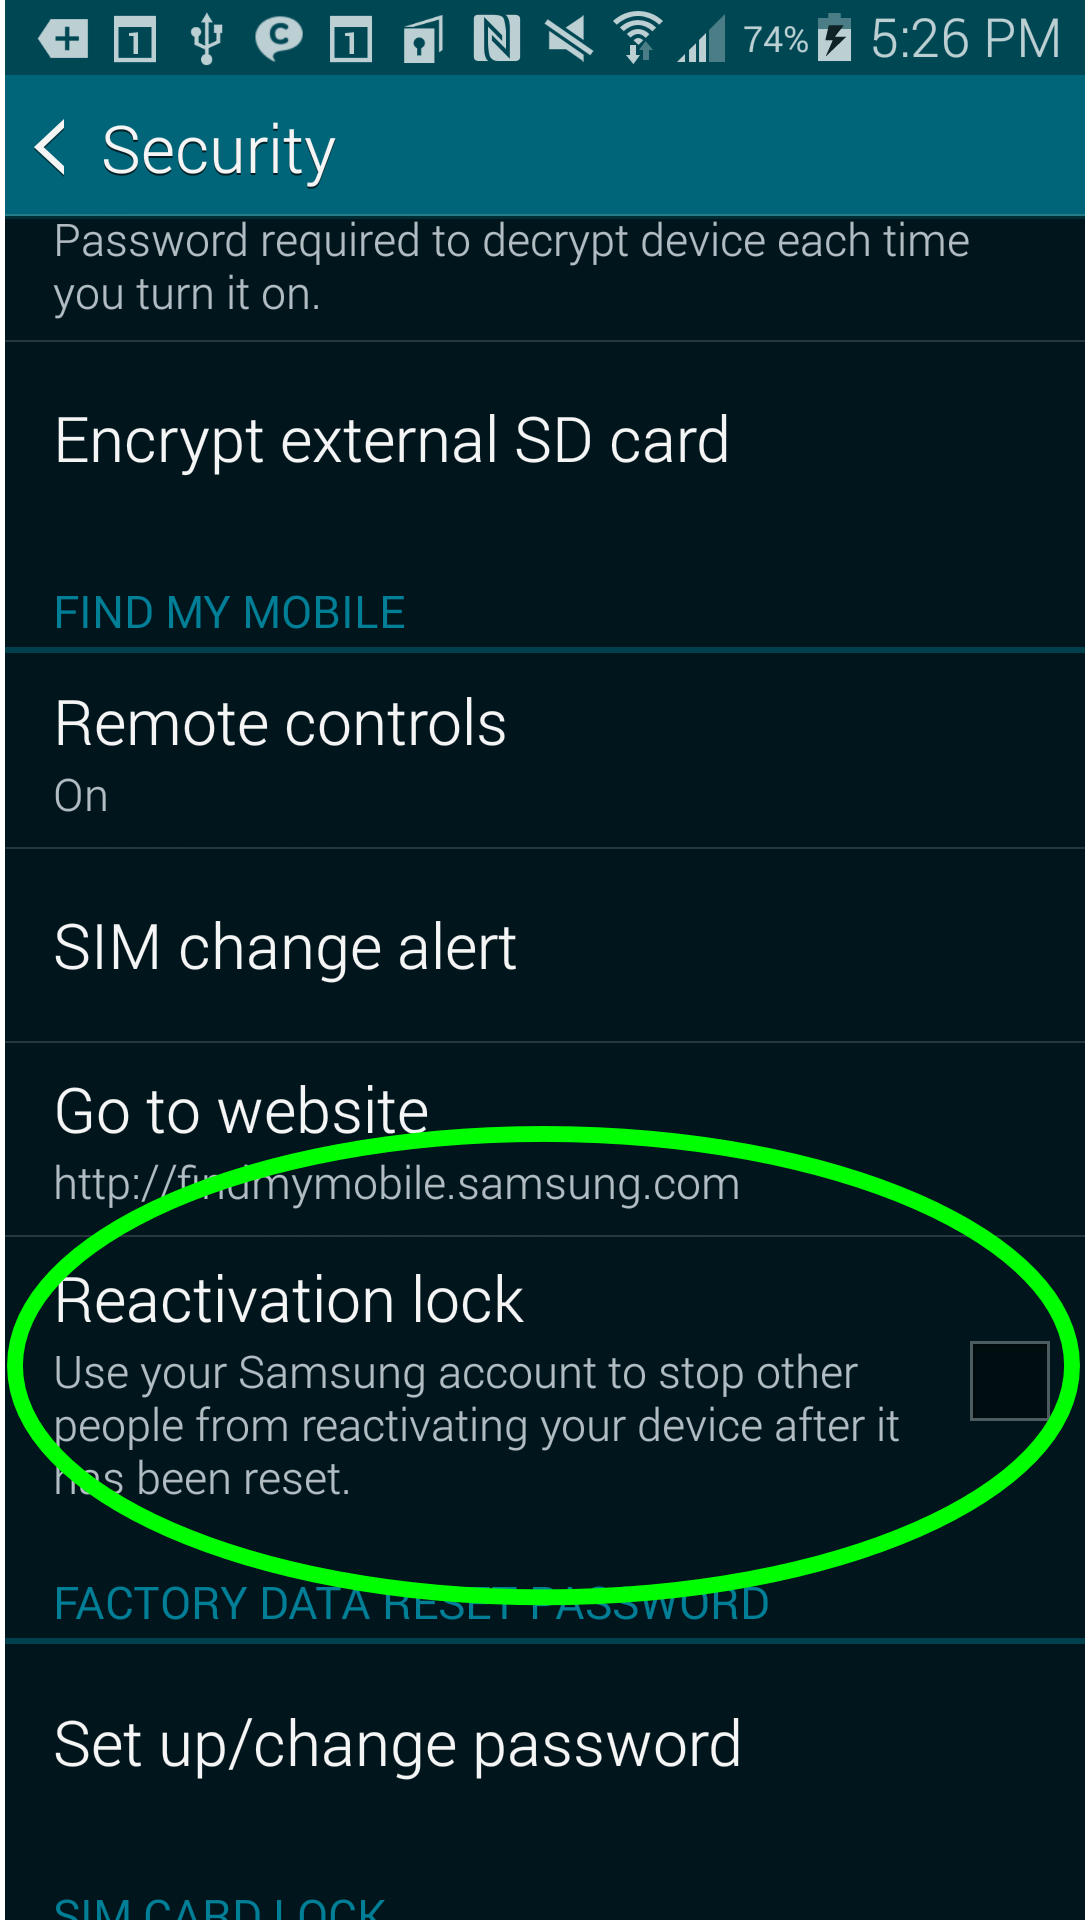 7 Samsung Galaxy S5 Security Tips to Keep You Safe | Tom's Guide